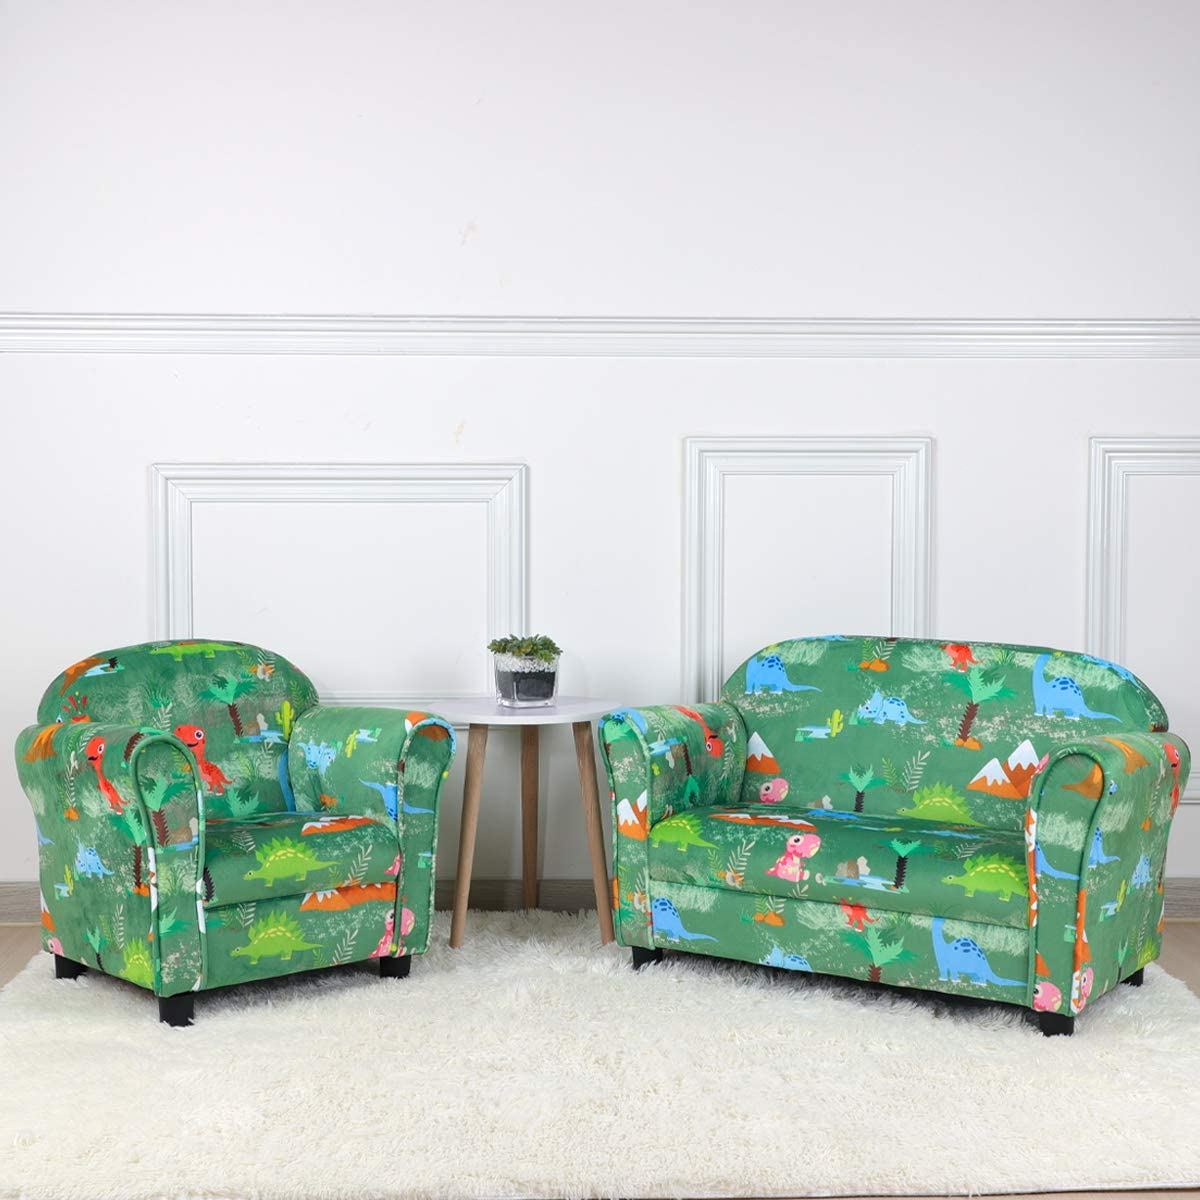 Velvet Fabric 2-Seater Kid Upholstered Couch Perfect Kid Gift Kid Sofa Chair Green